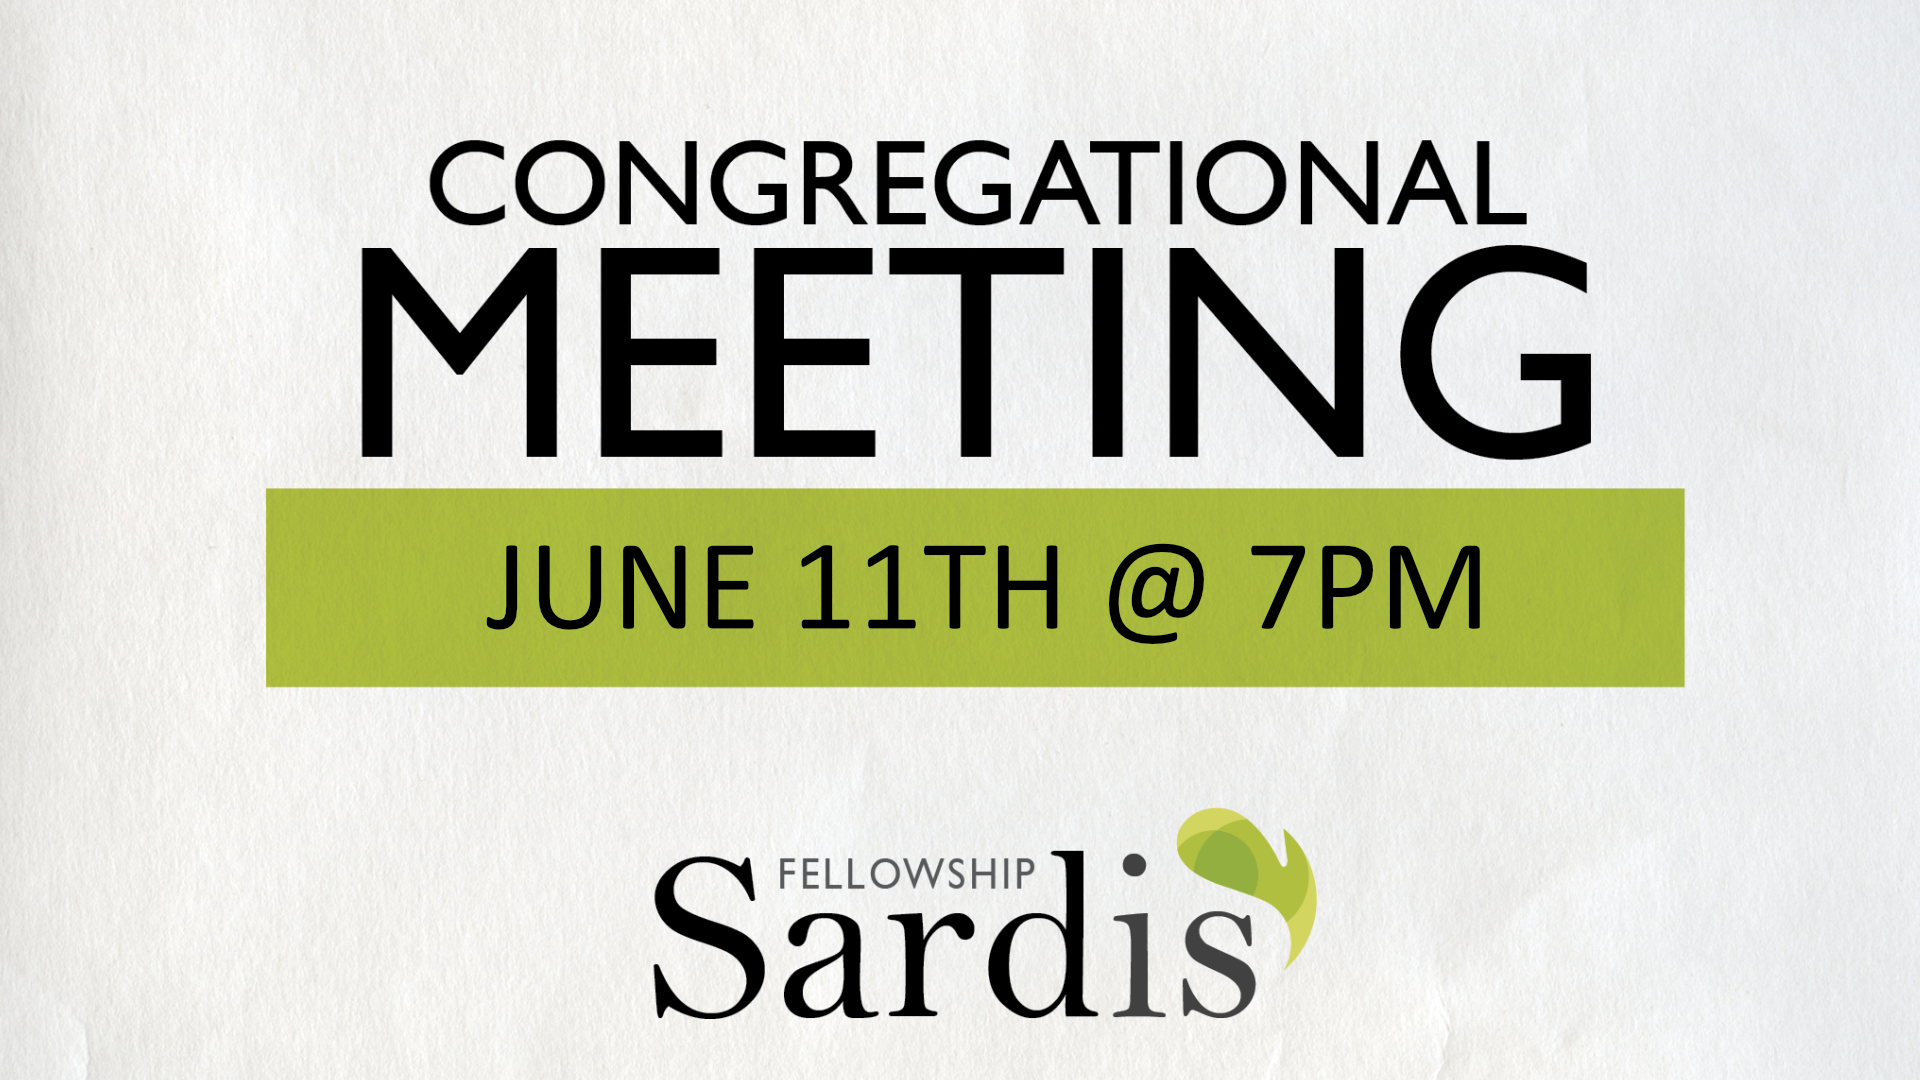 Congregational Meeting Power Point-June 11th, 2018.png